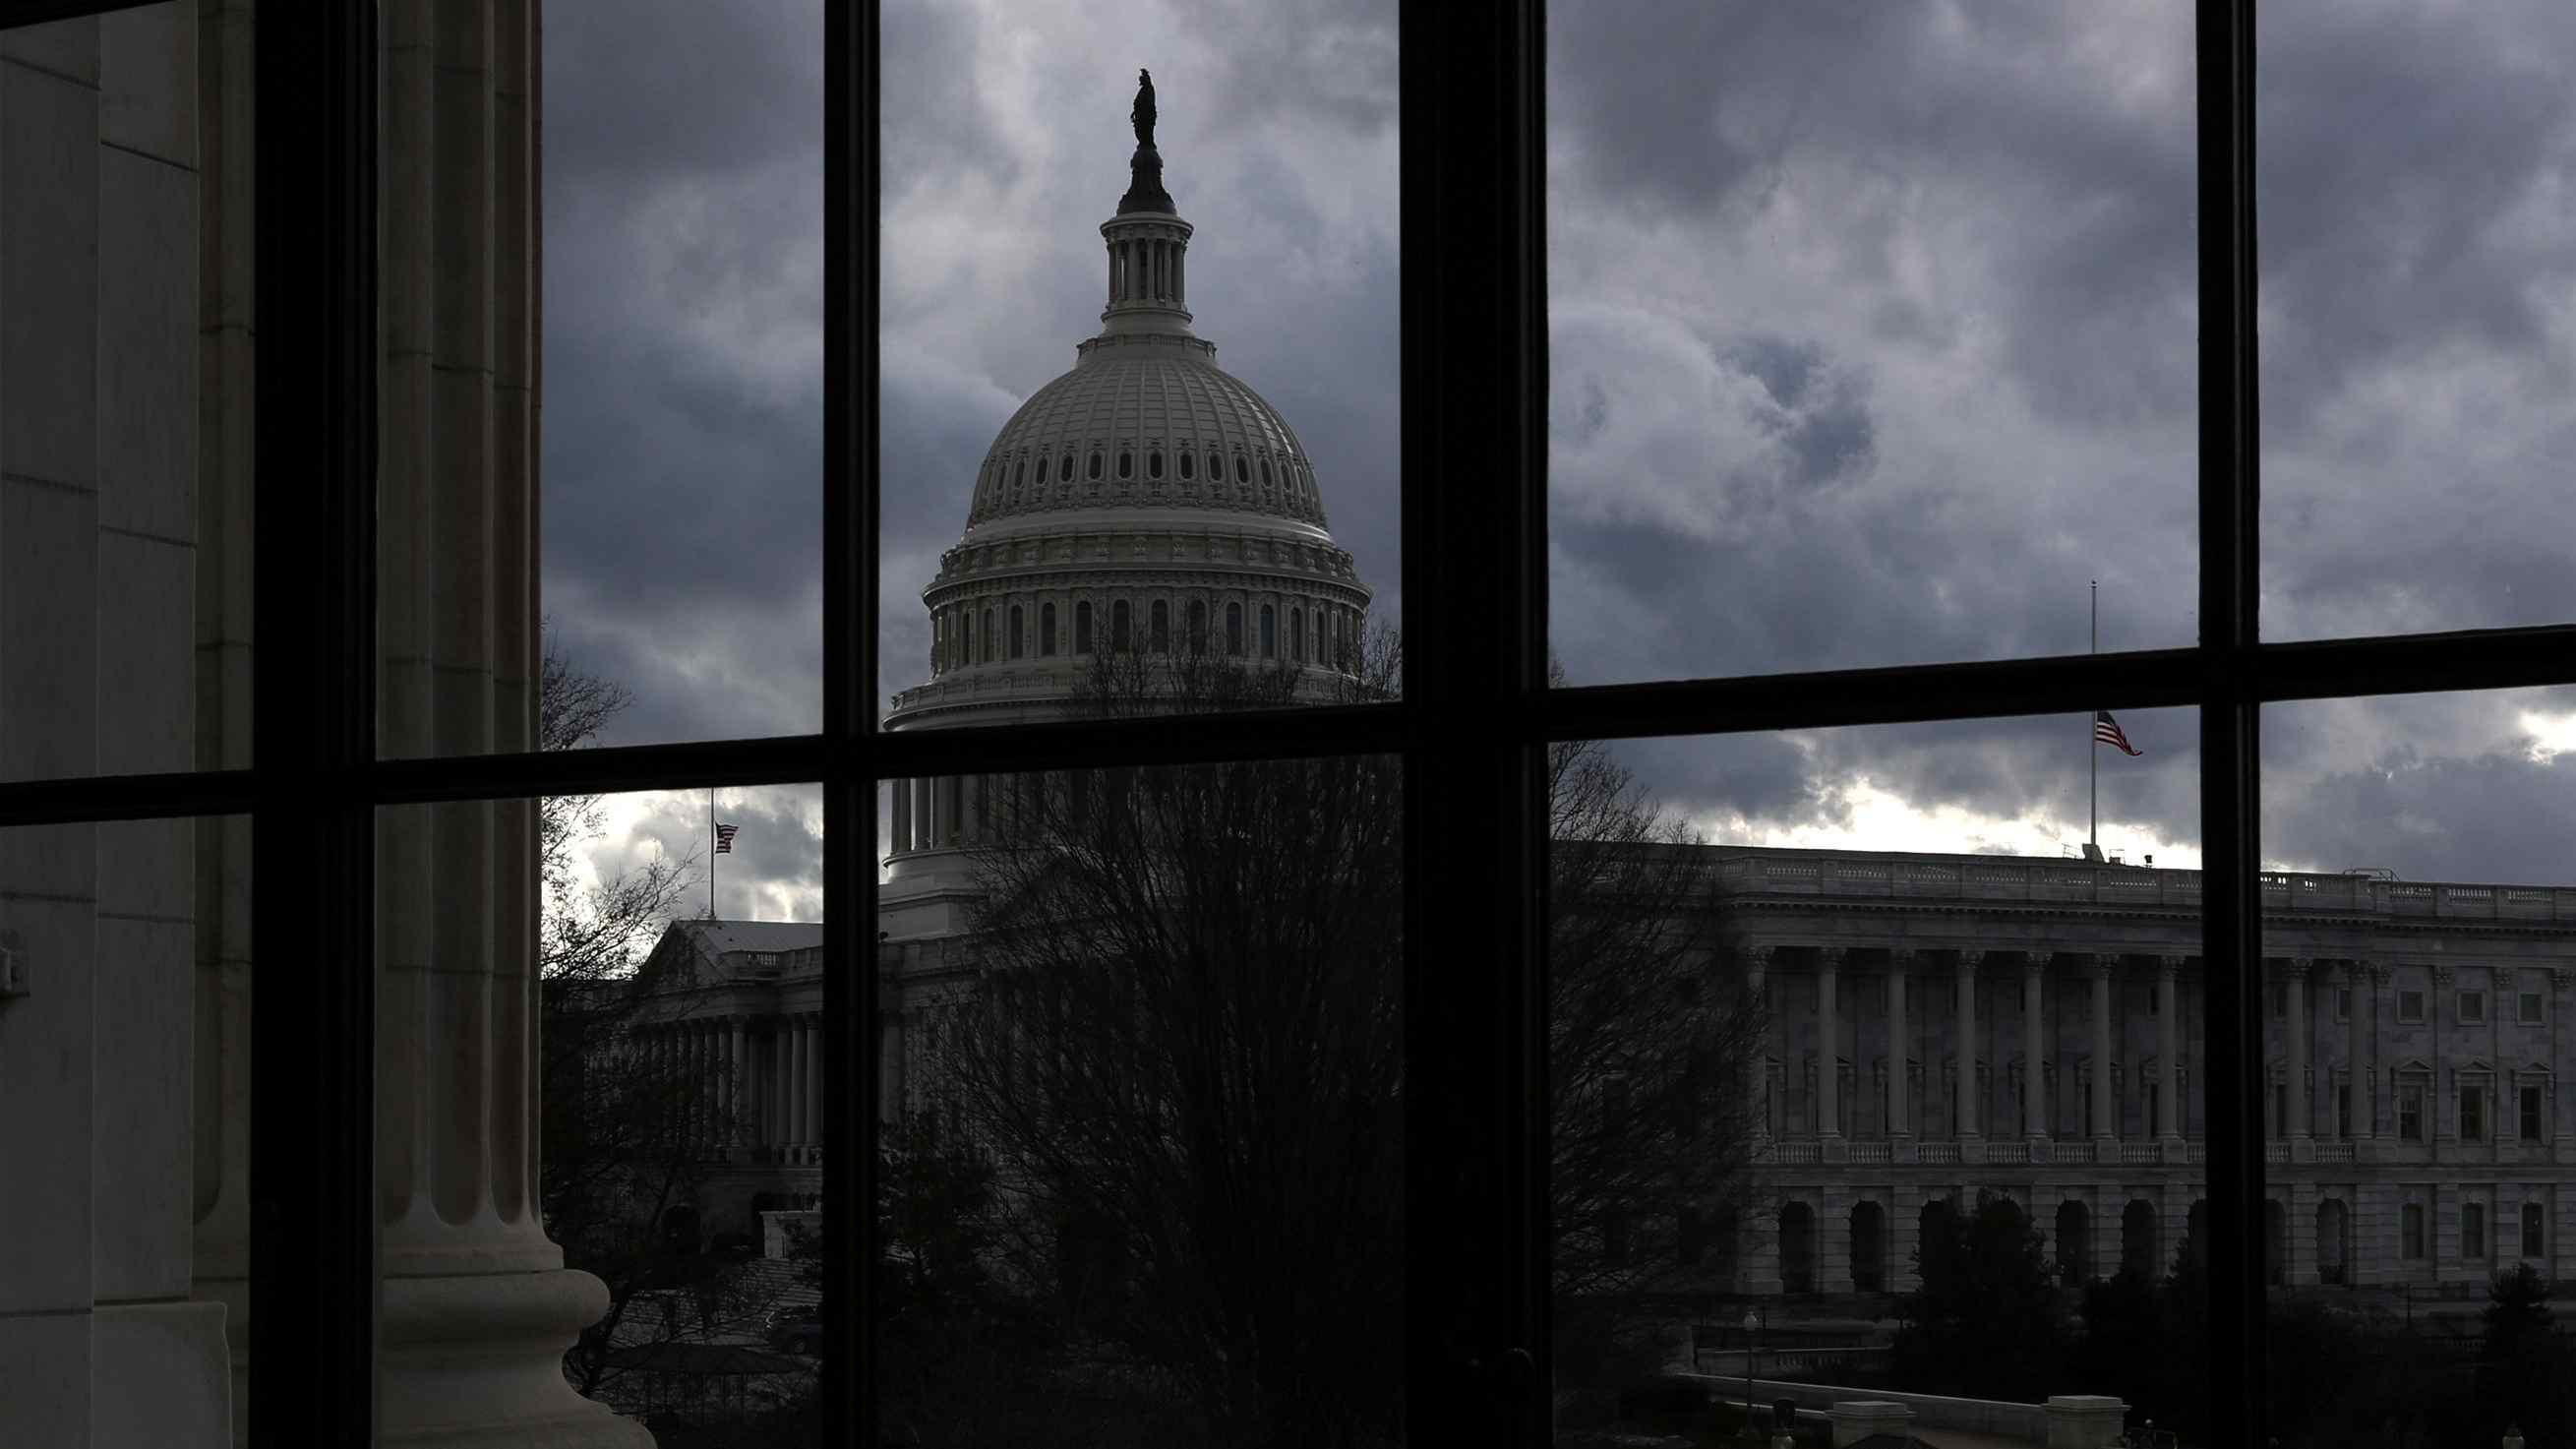 Partial shutdown of US federal government in effect after budget impasse